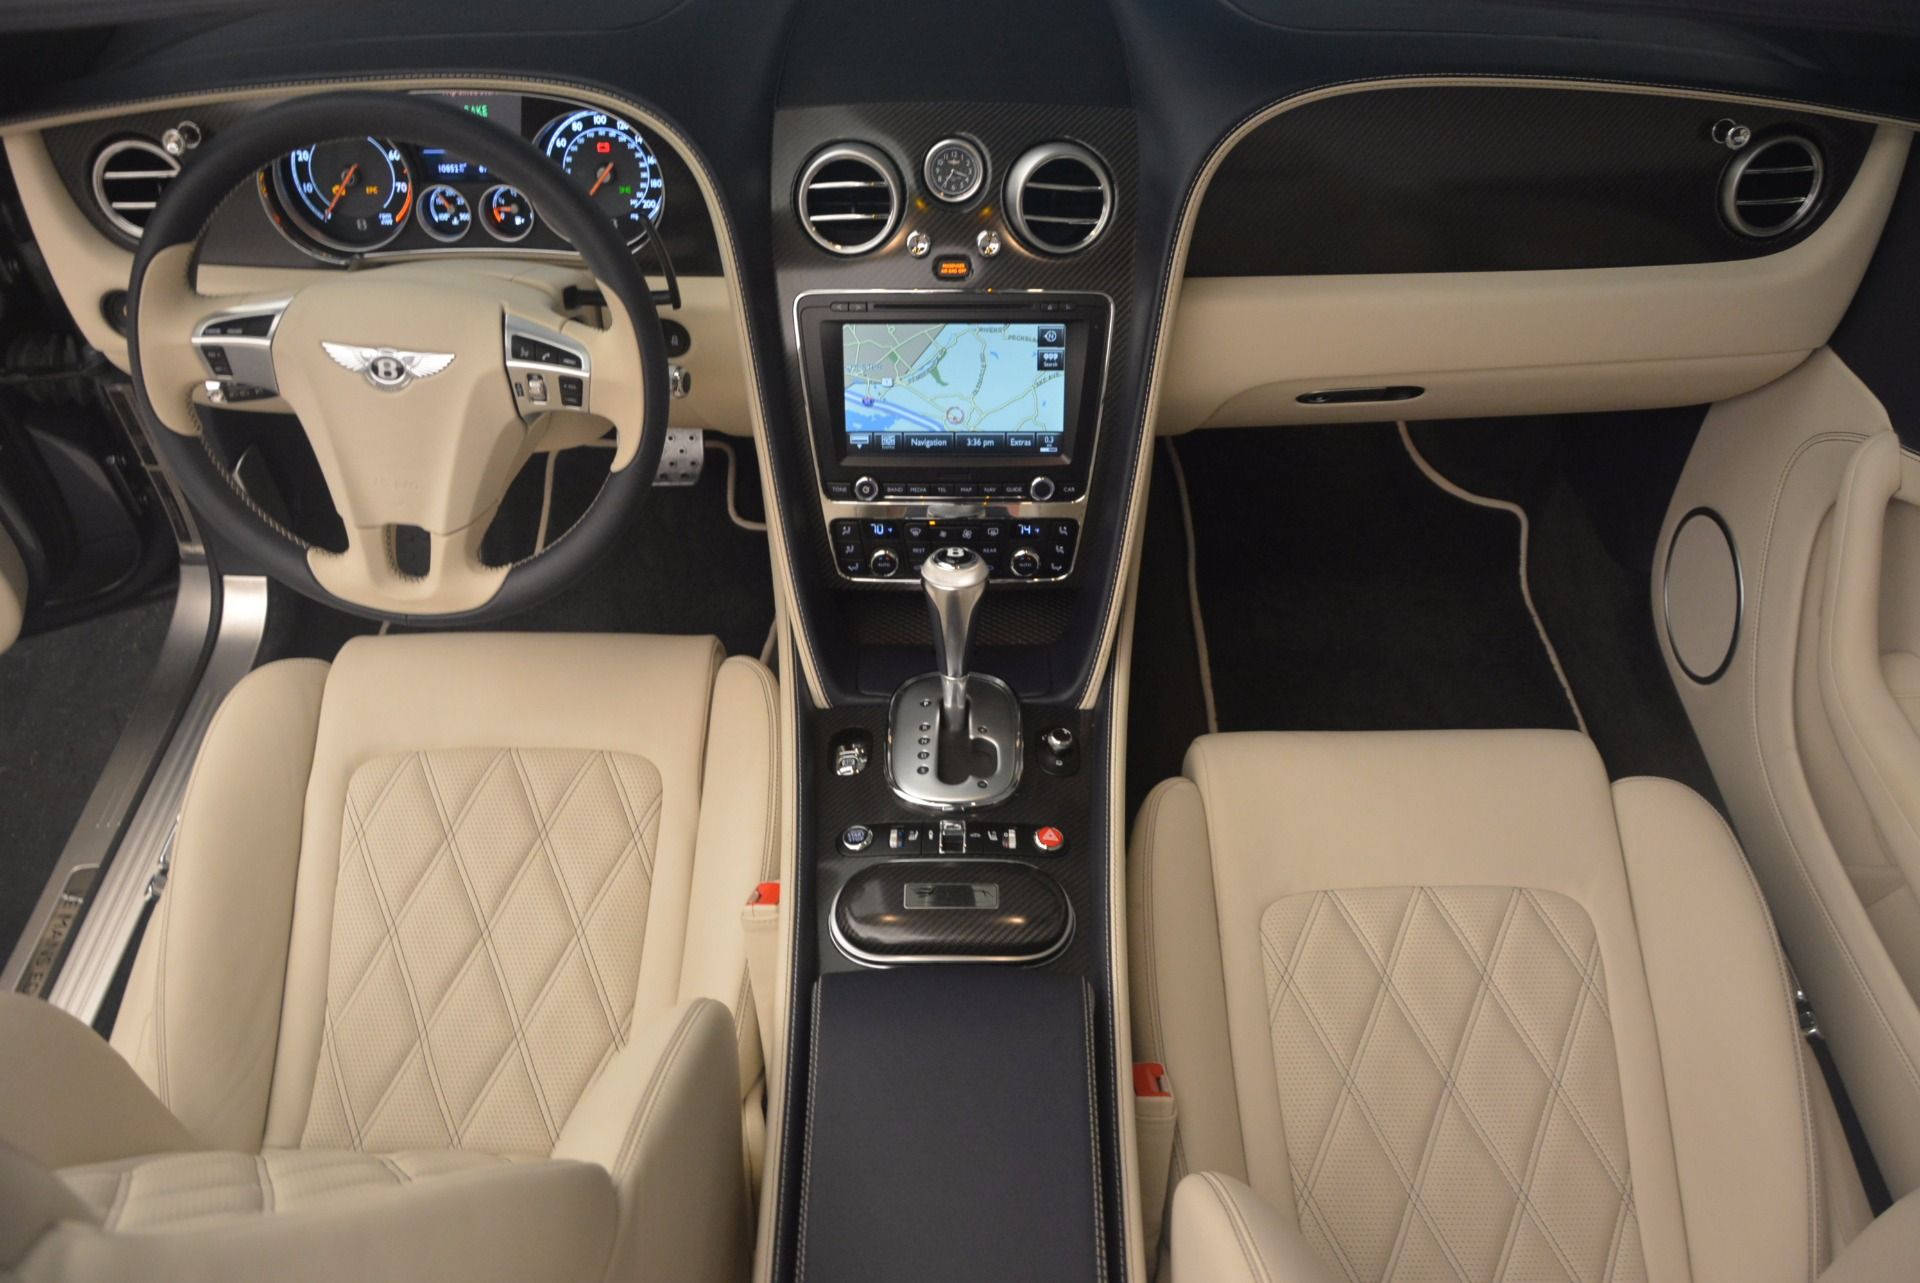 Used 2013 Bentley Continental GT V8 Le Mans Edition, 1 of 48 For Sale 0 In Greenwich, CT